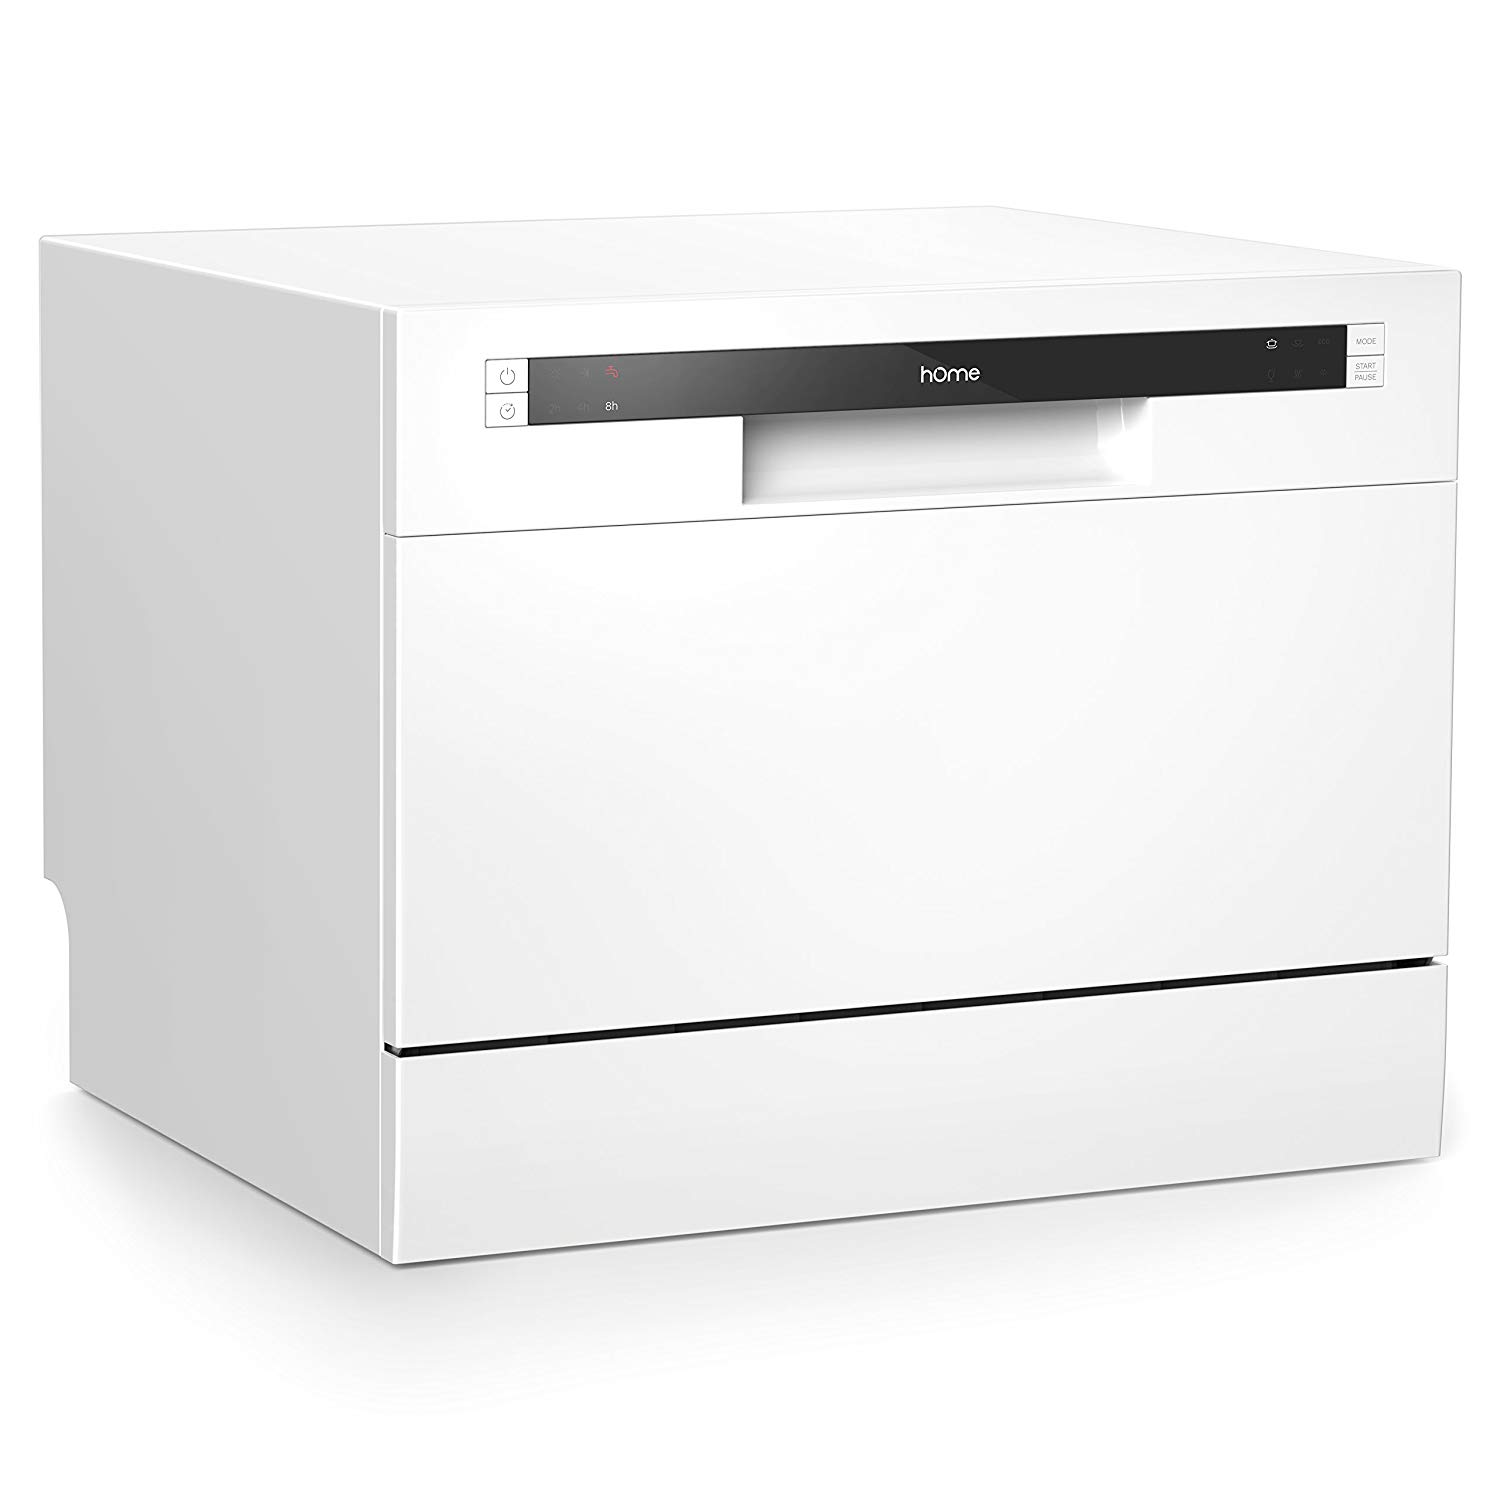 hOmeLabs Countertop Dishwasher